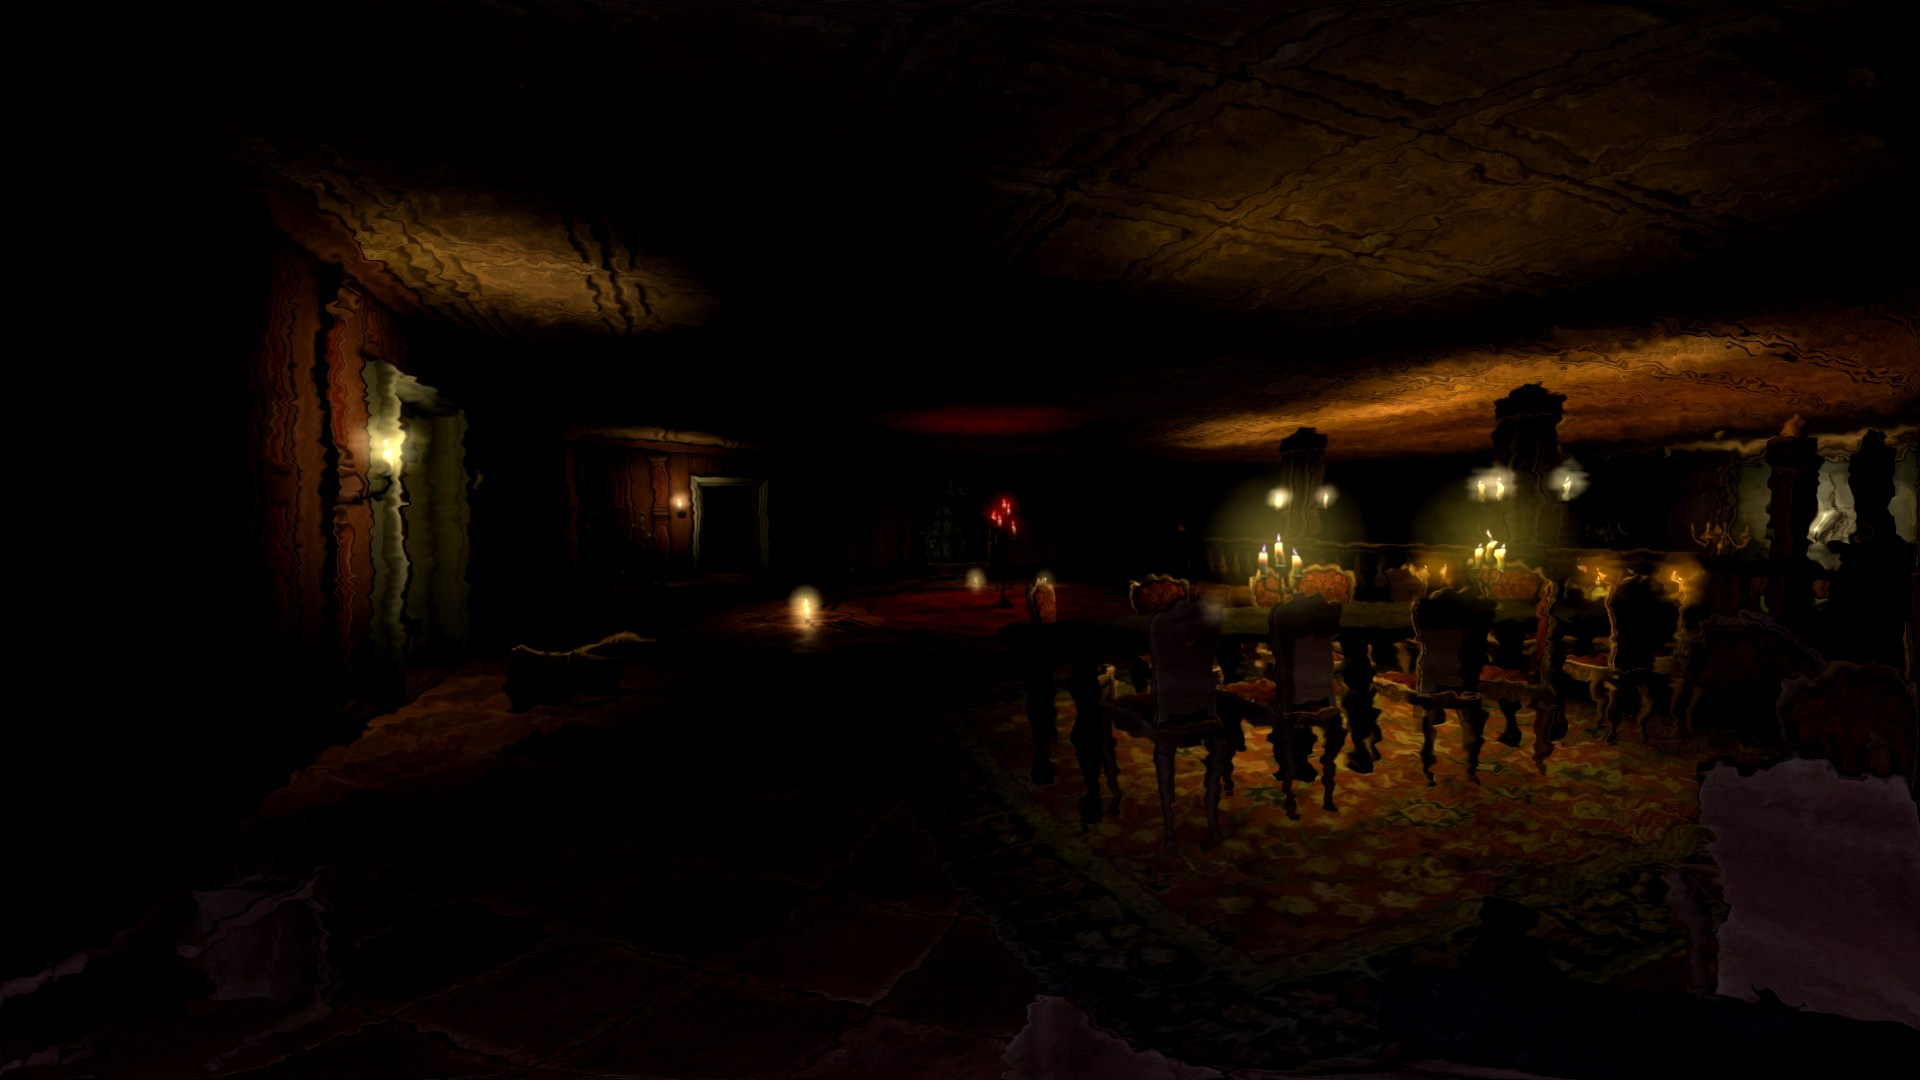 Amnesia: The Dark Descent (The Call From Another Dimension mod)